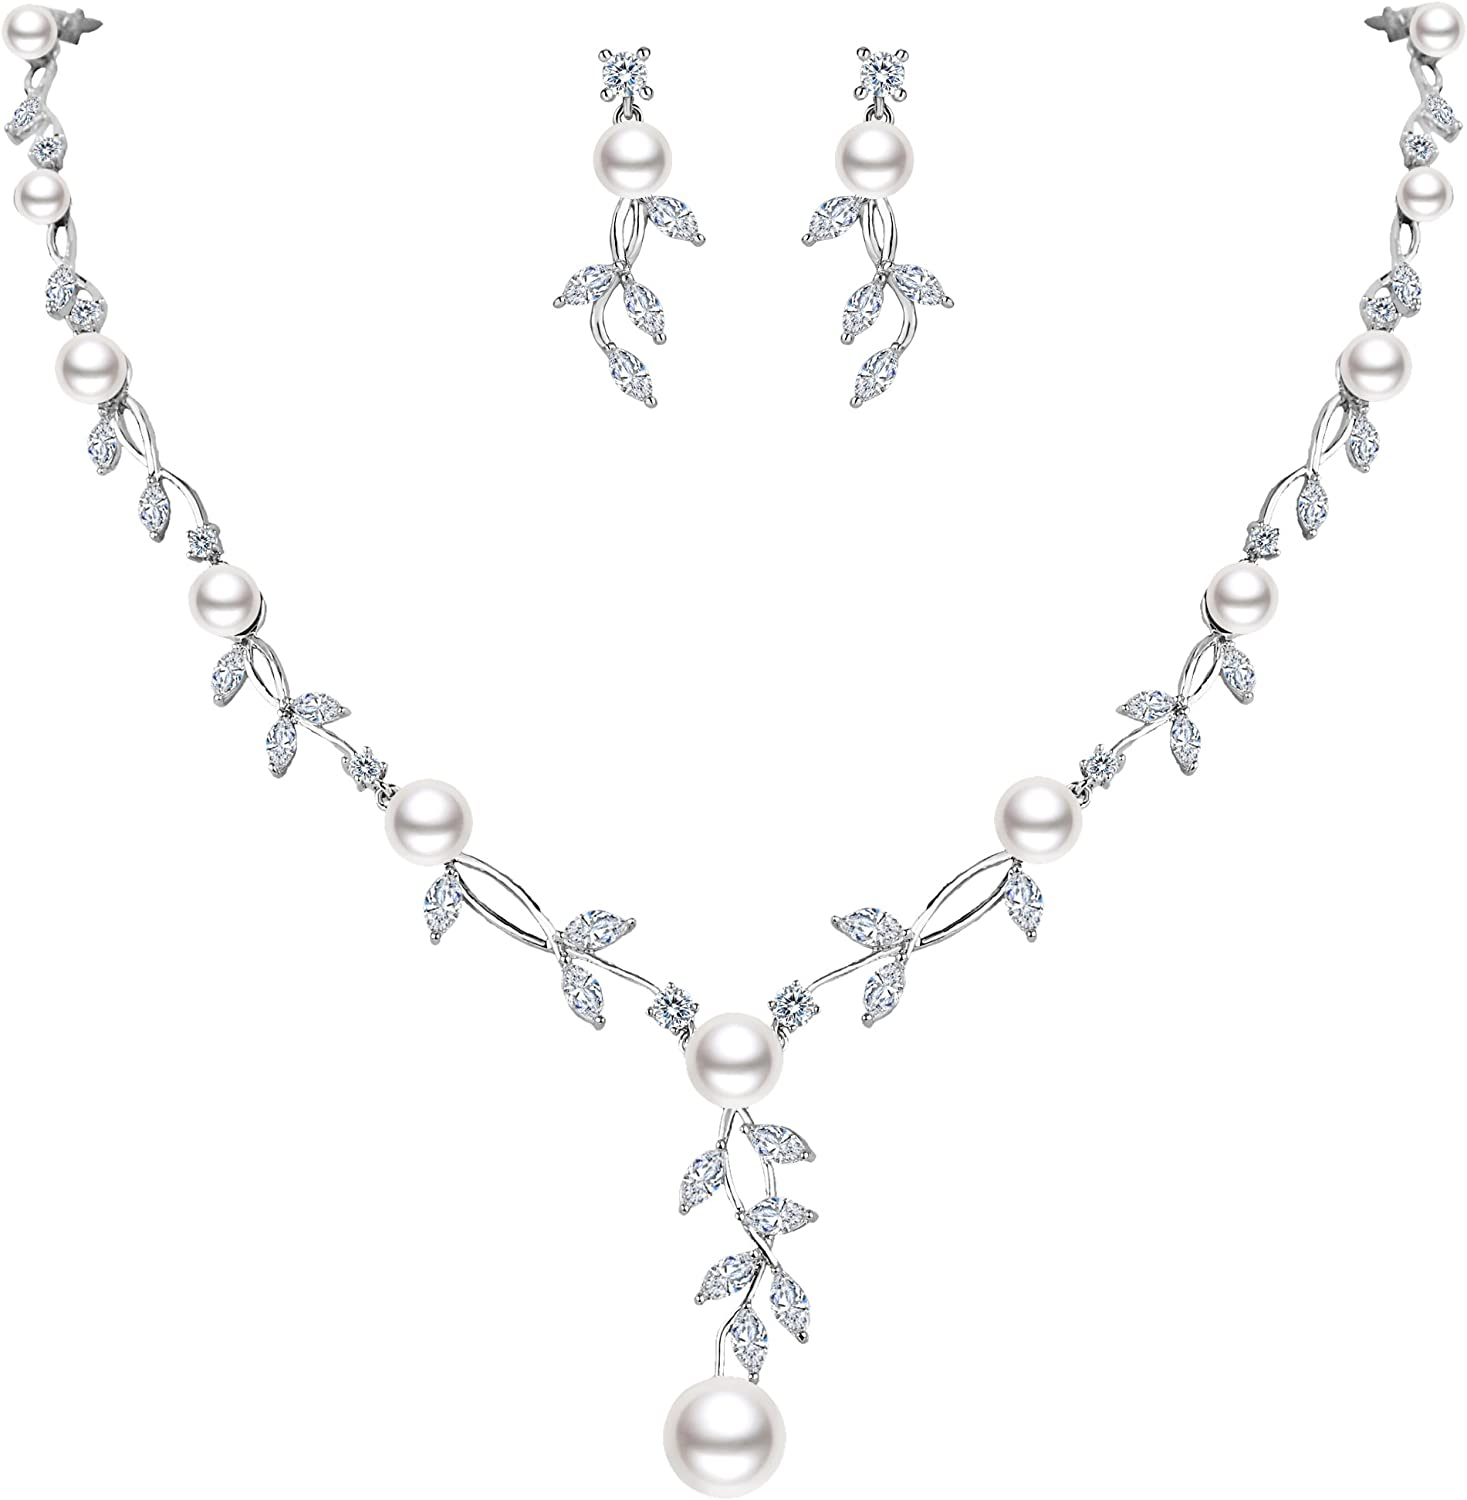 EVER FAITH Wedding Jewelry White CZ Cream Simulated Pearl Floral Branch Pendant Bride Necklace Earrings Set